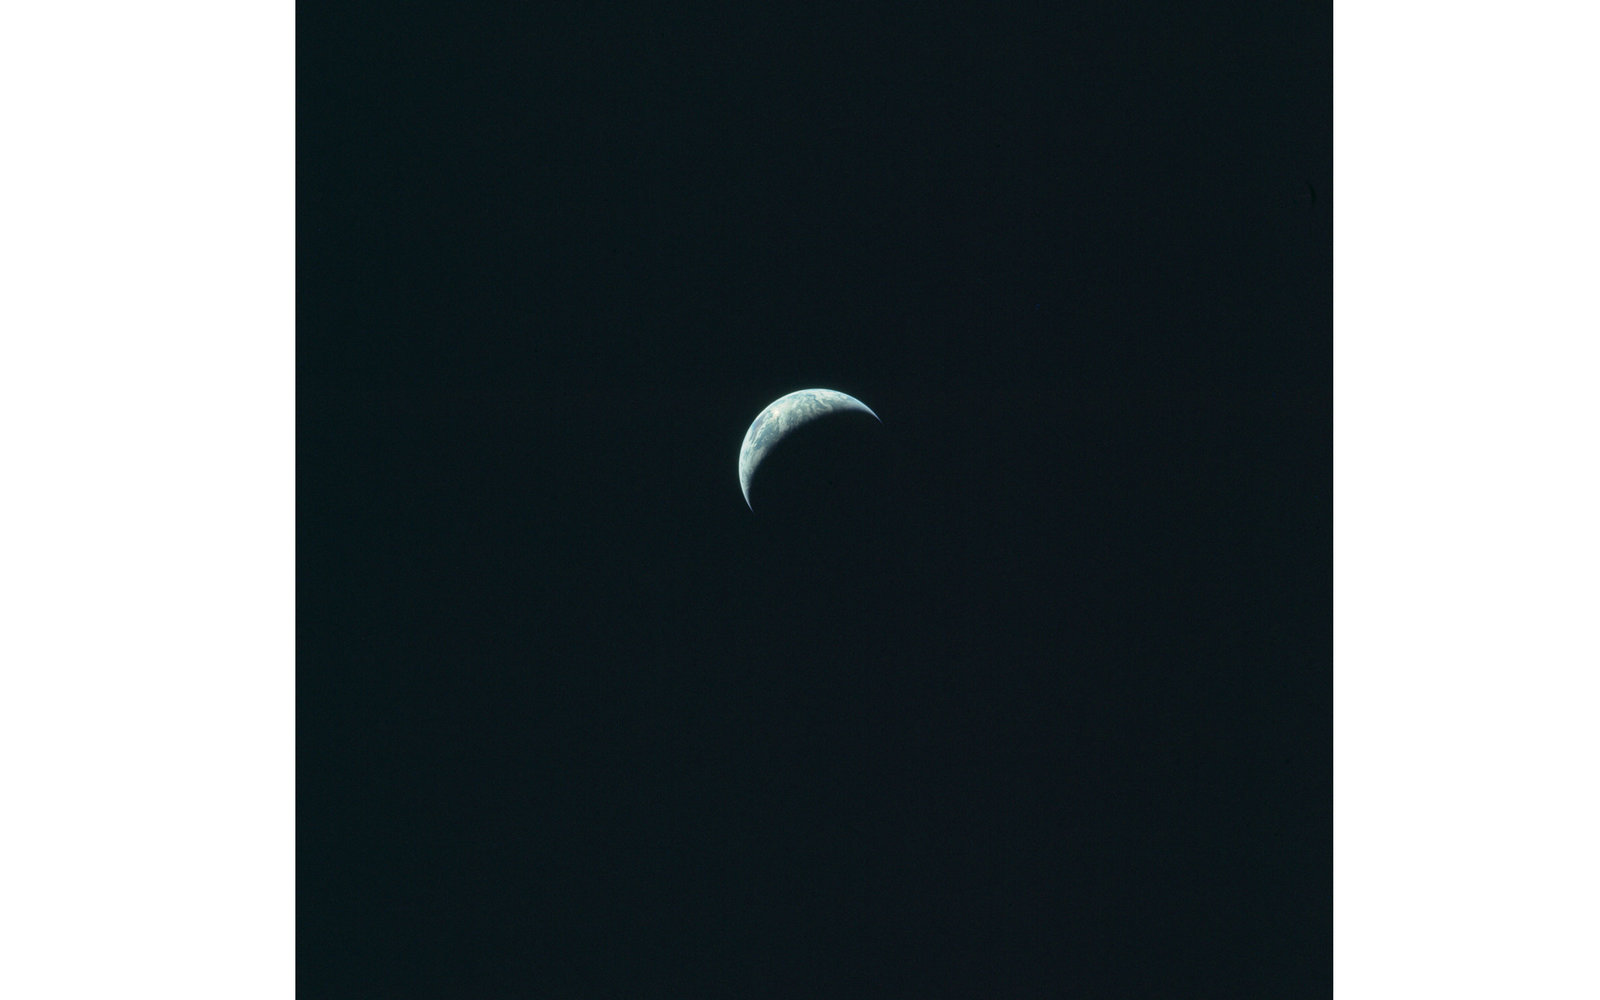 Apollo 7 Space Photo Archive